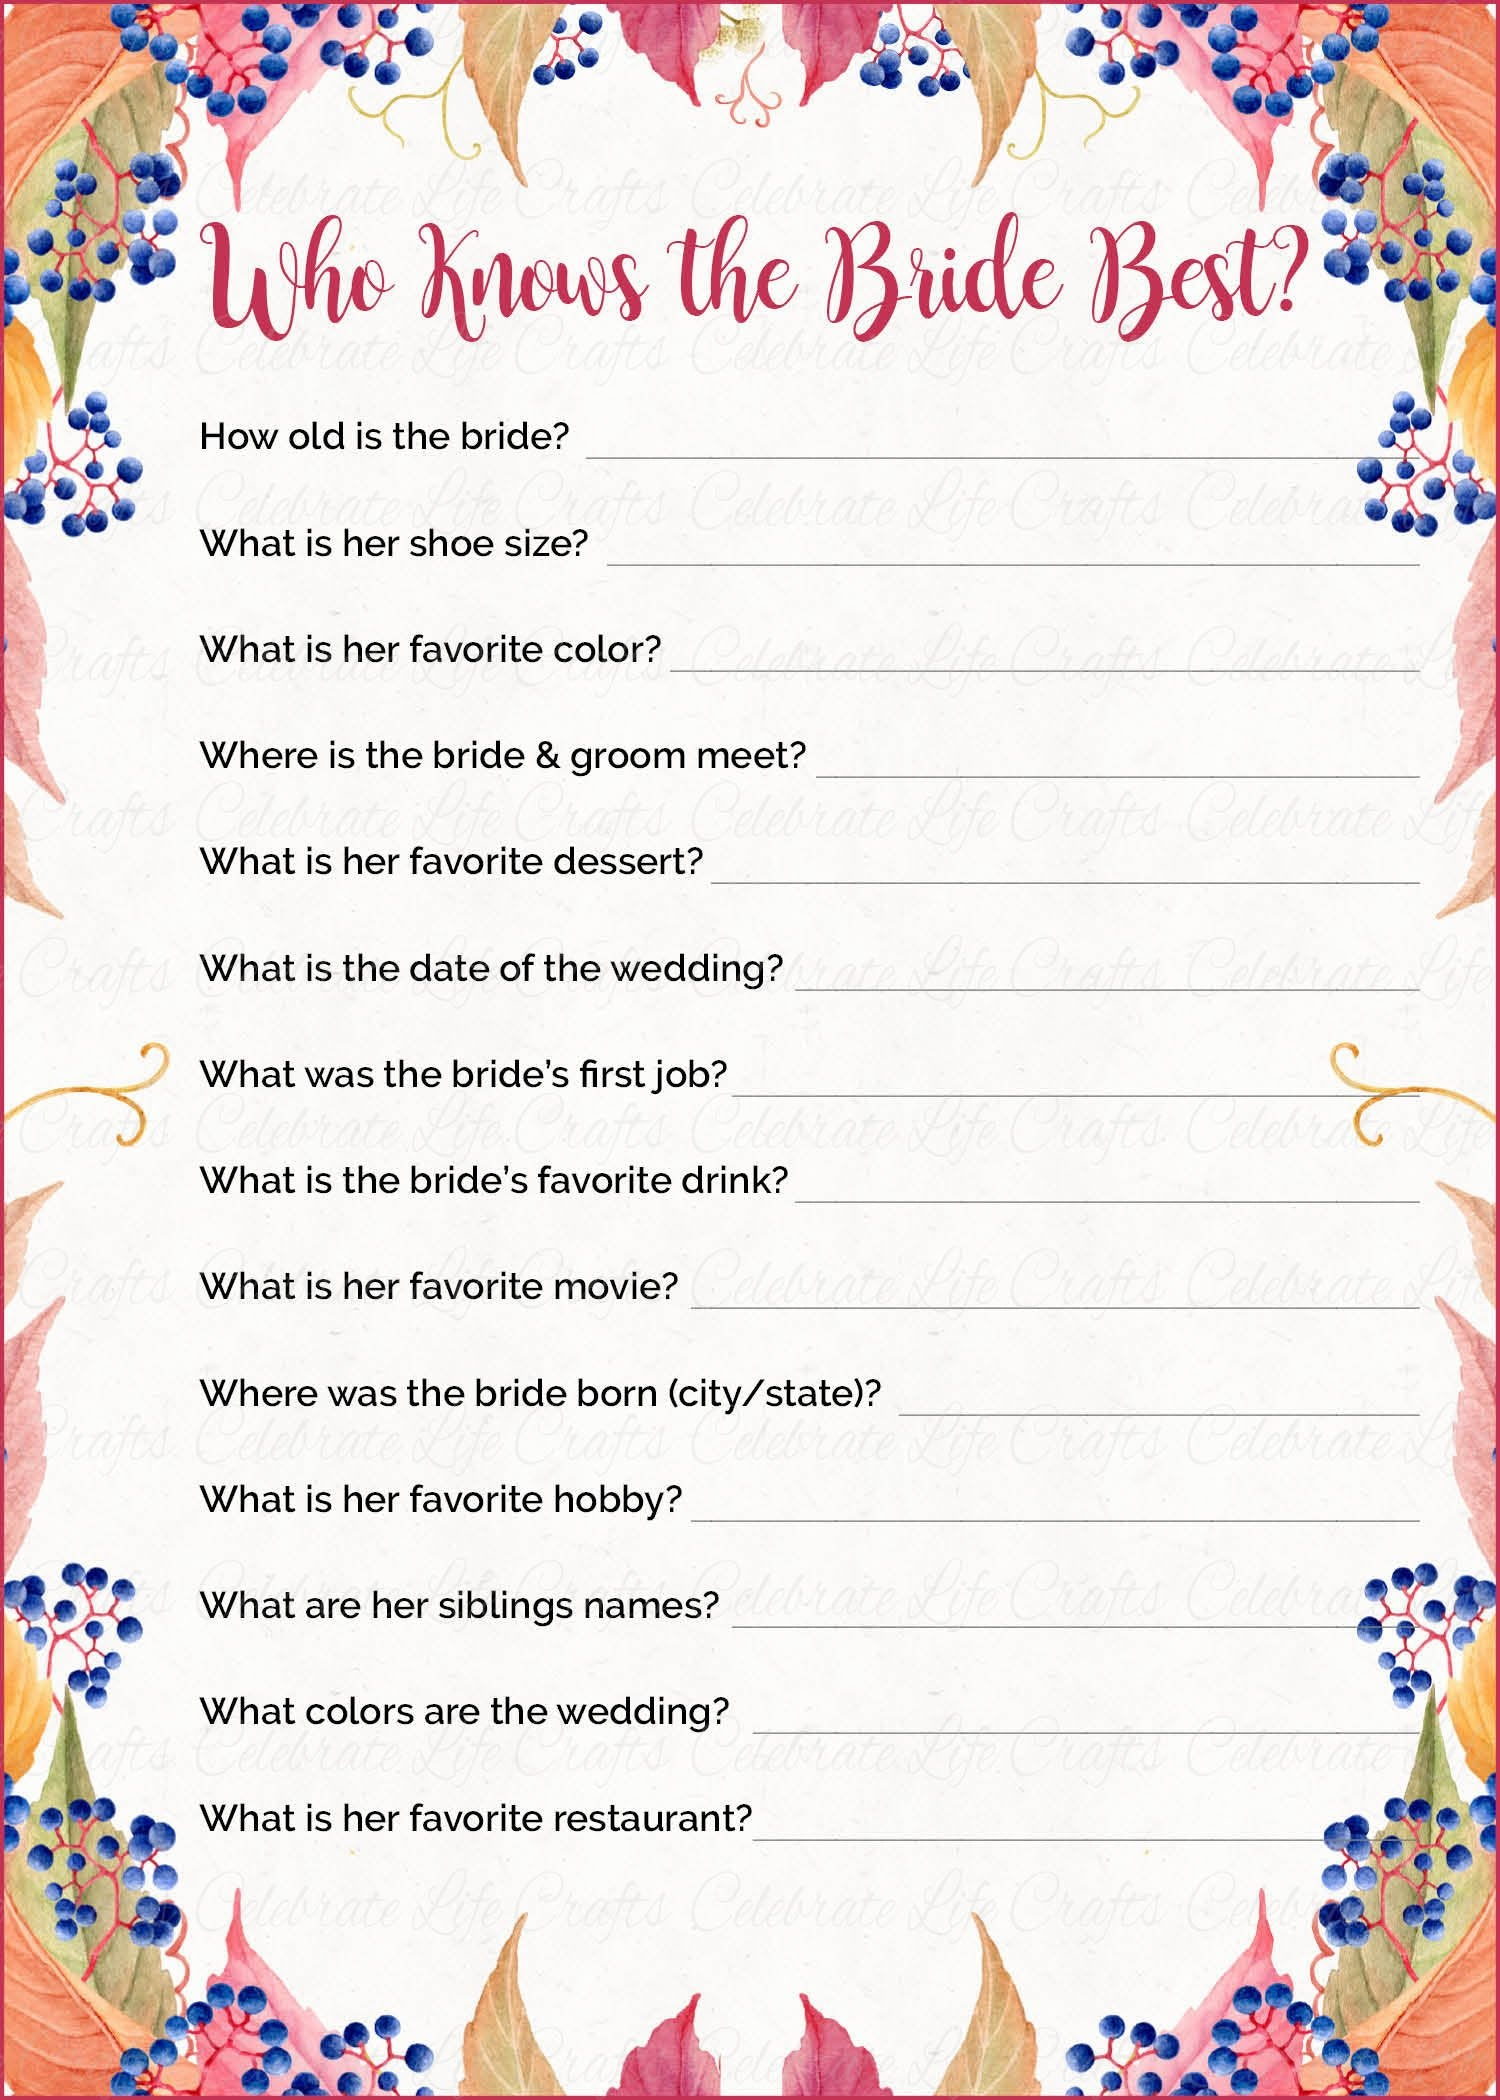 Who Knows the Bride Best Fall Bridal Shower Game - Falling in Love ...